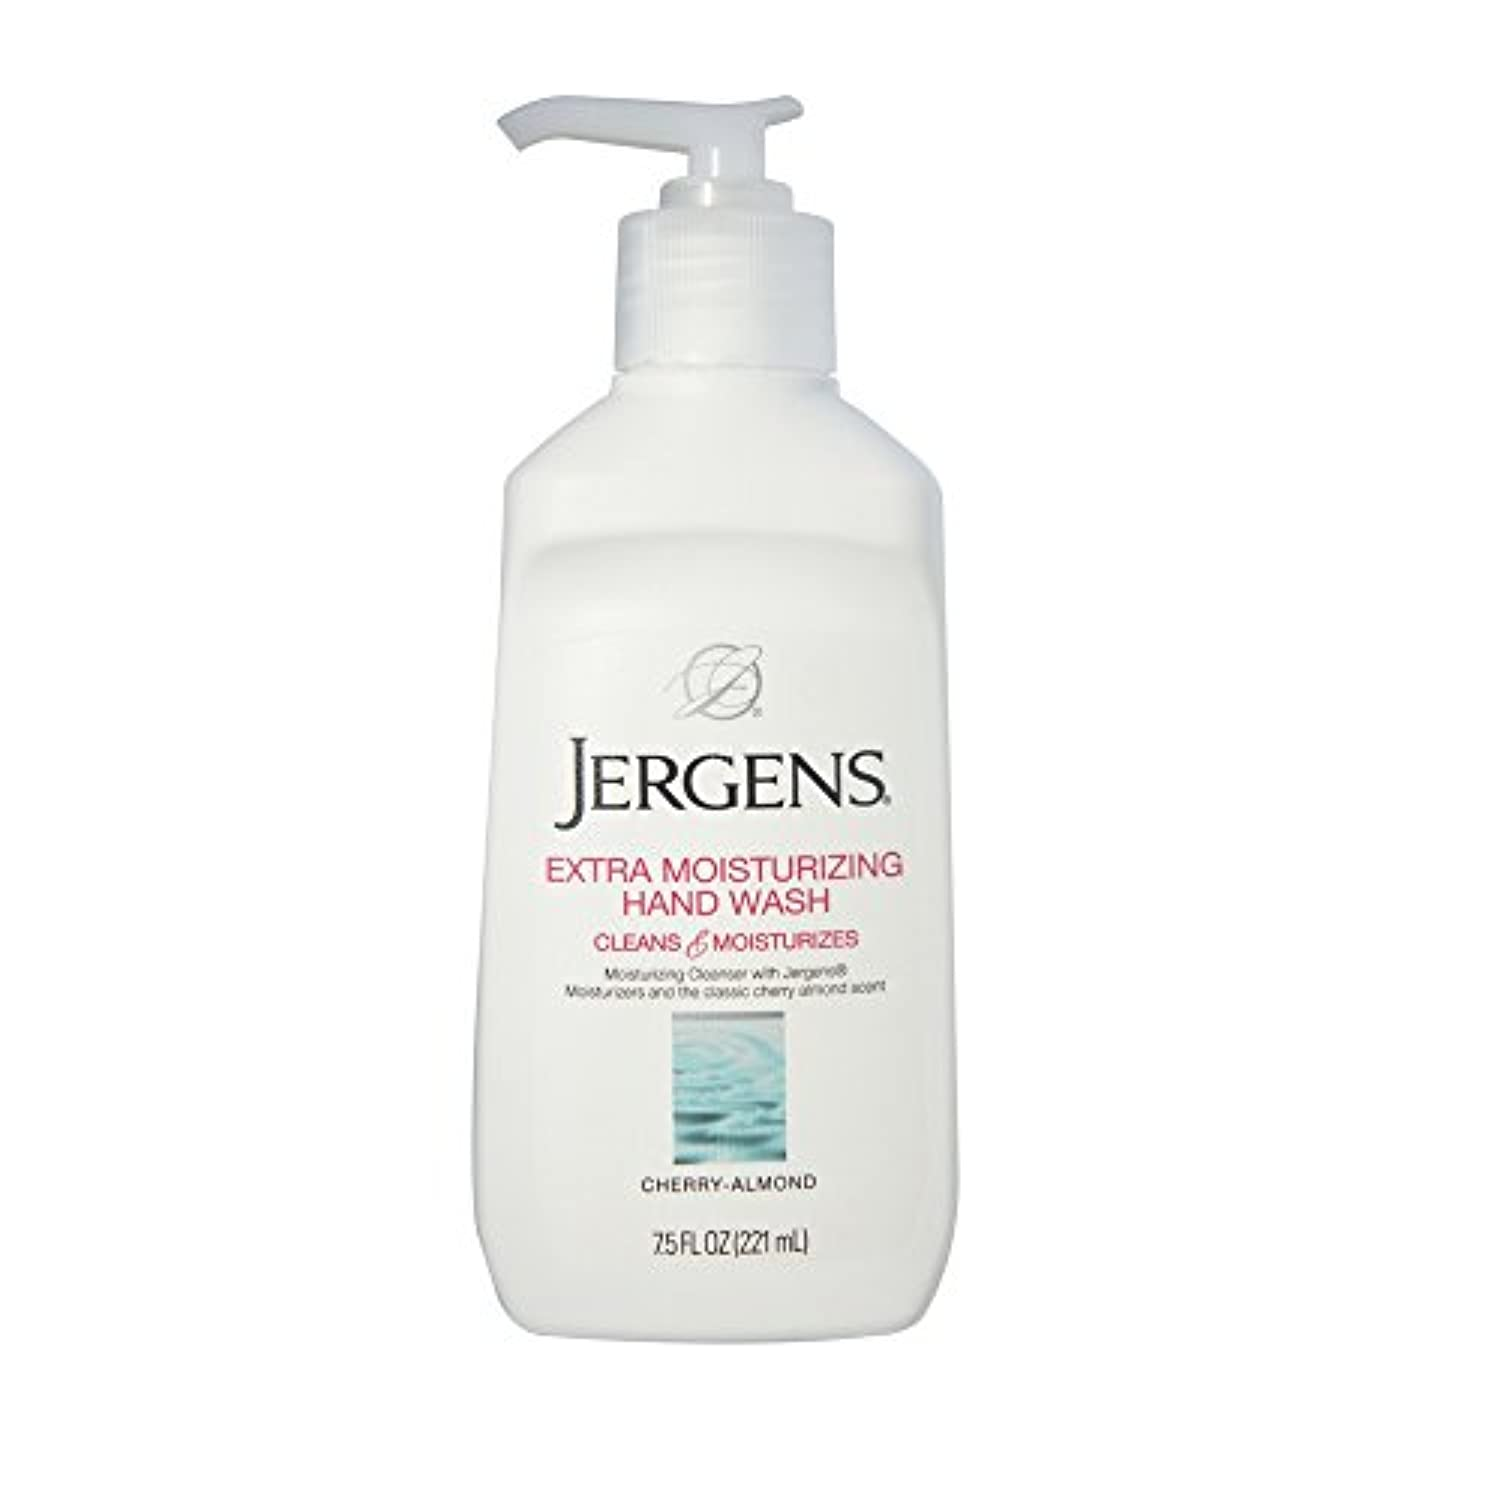 Jergens Extra Moisturizing Hand Wash, Cherry-Almond 7.50 oz (Pack of 3) by Jergens